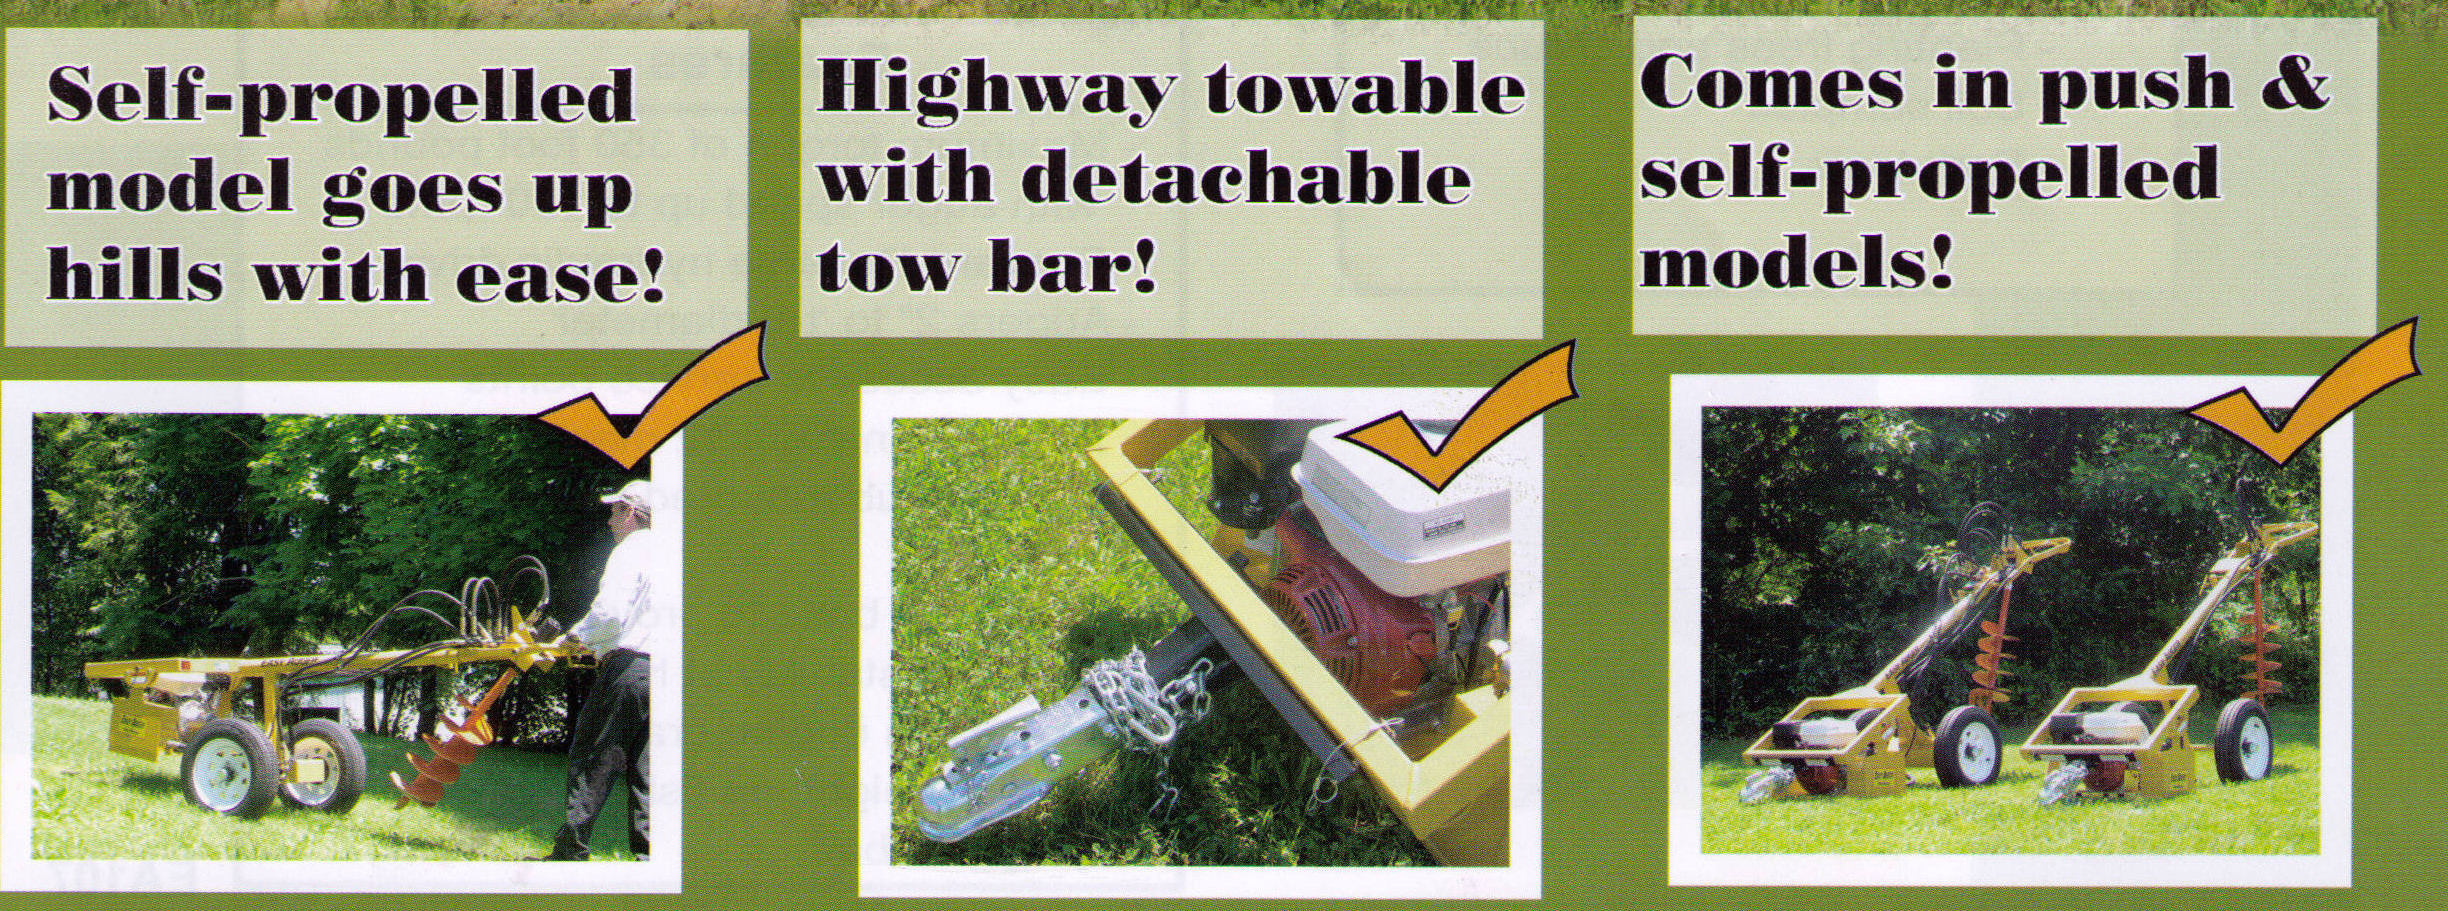 Available In Push And Self-Propelled, Optional Tow Bar Available For Highway Towing